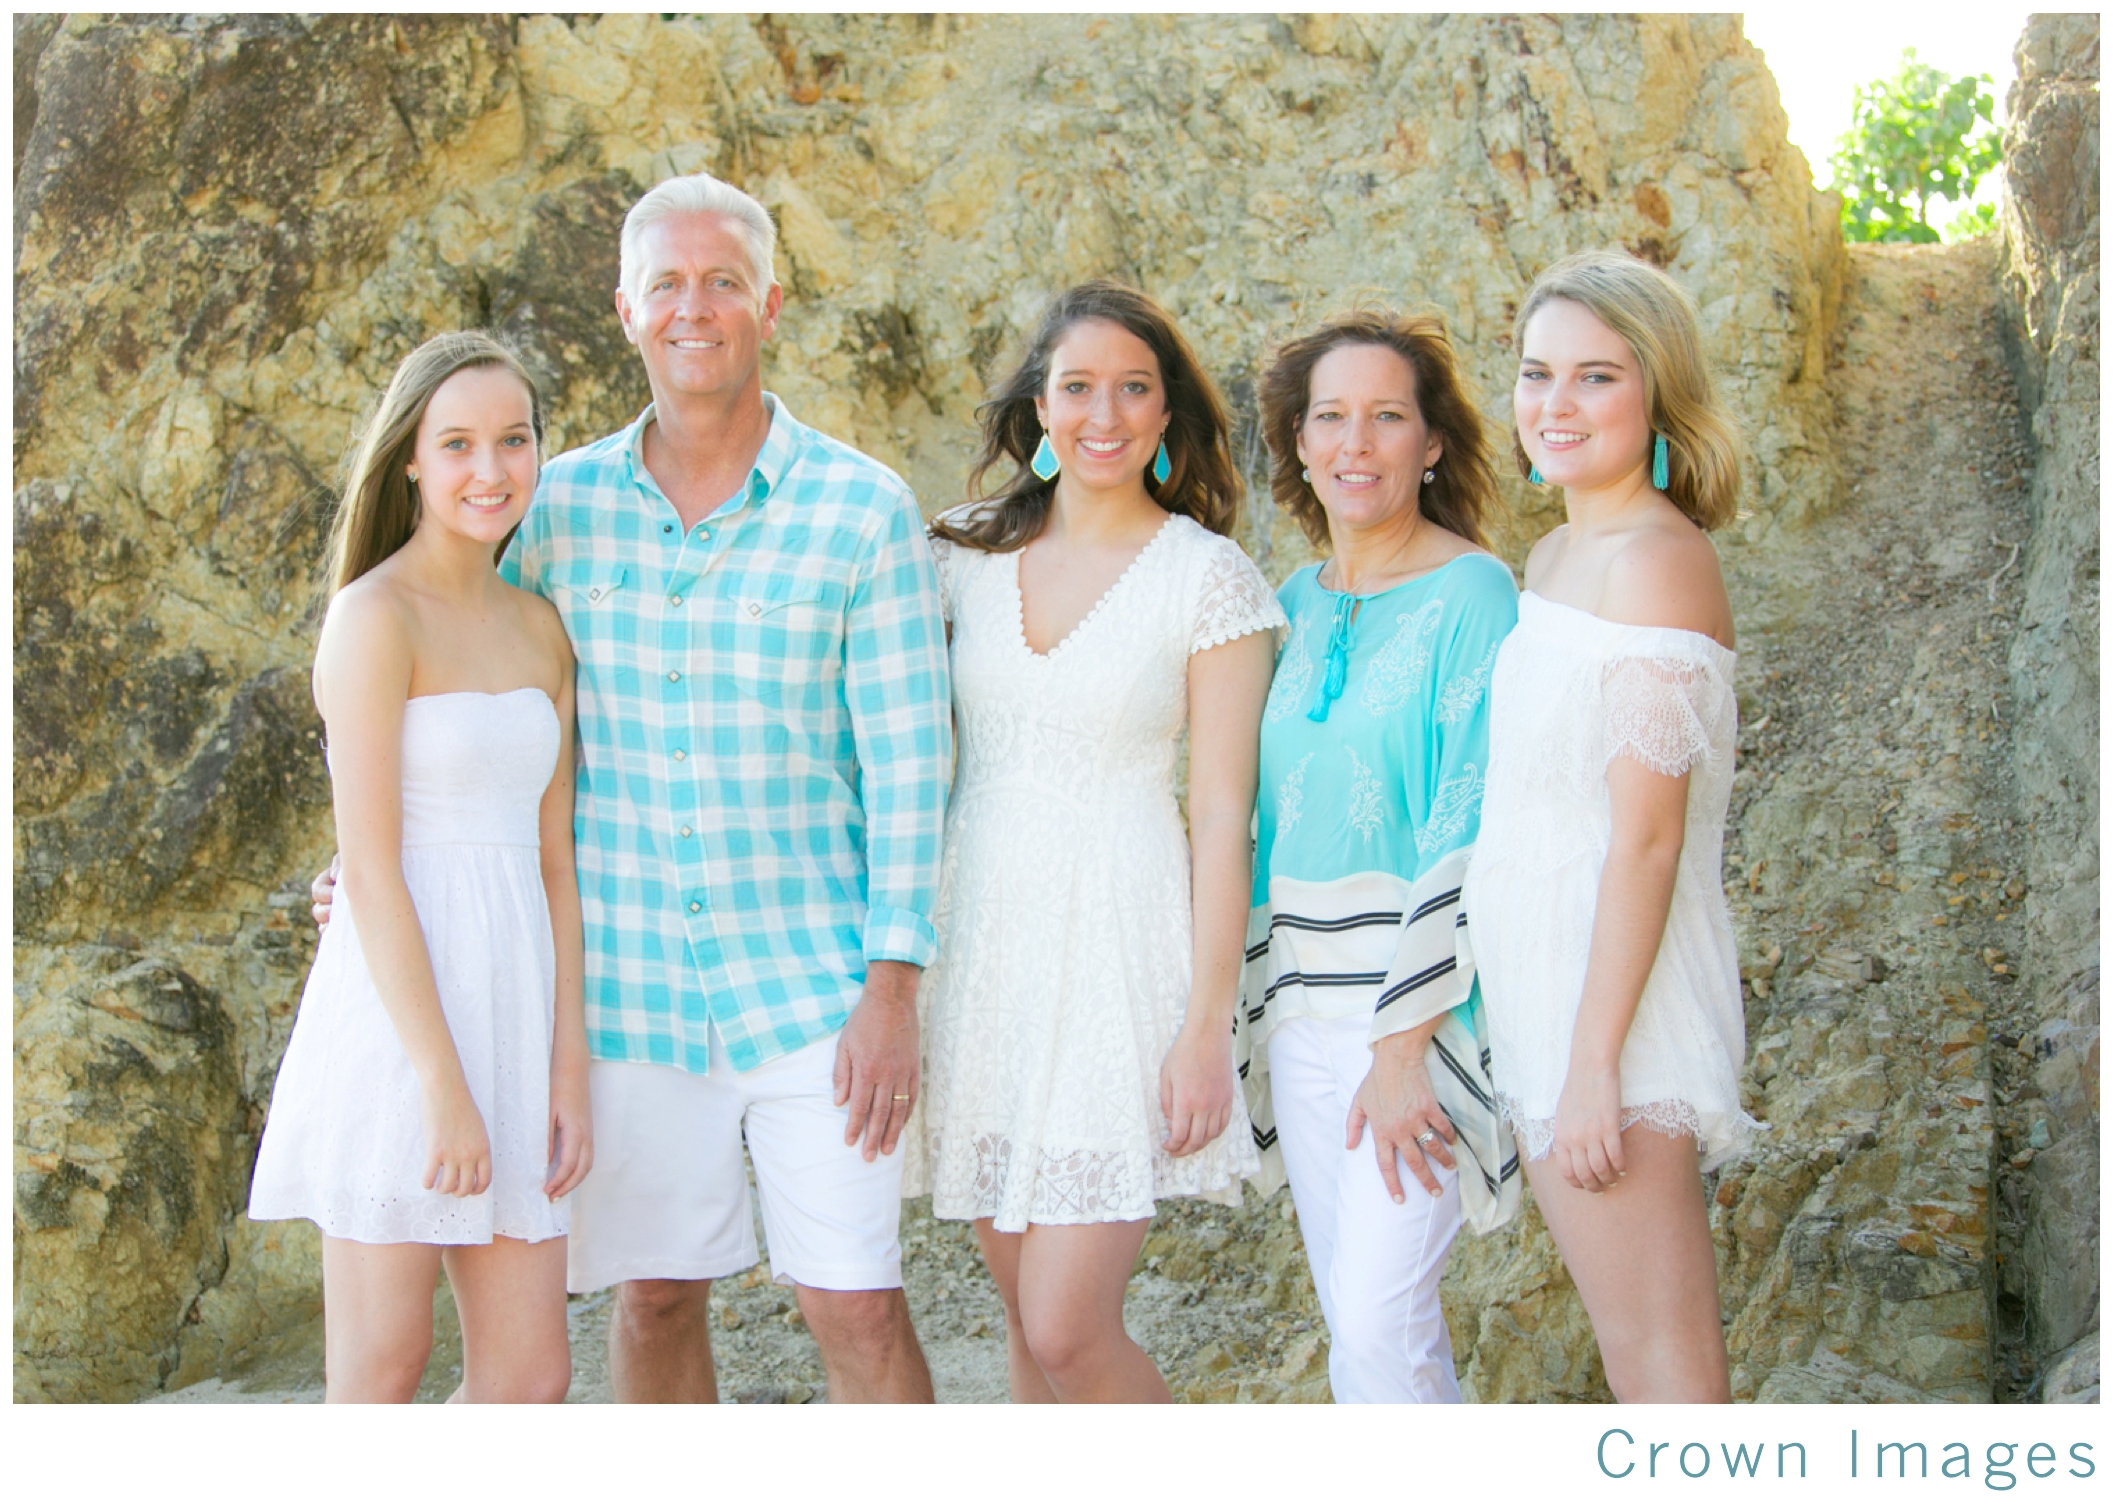 st_thomas_family_photographer_0823.jpg